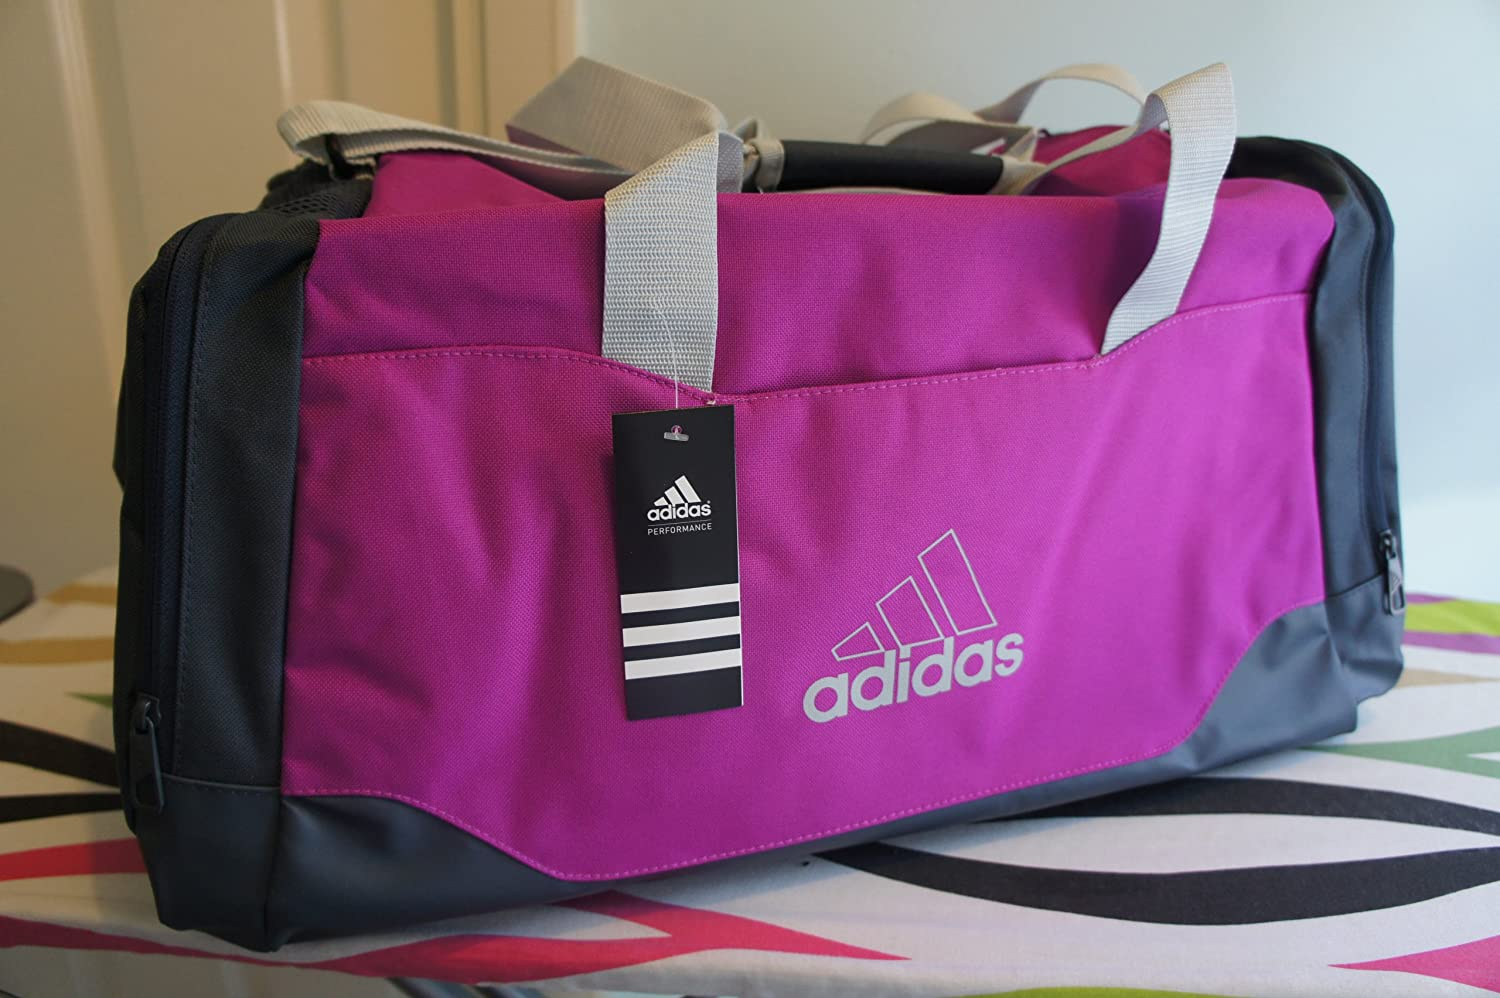 cc5ea81c53d7 adidas Performance Essentials Teambag Z31771 Women s Sports Bag 53 Litre 60  x 29 x 29 cm Vivid Pink Dark Onyx Clear Grey  Amazon.co.uk  Sports    Outdoors